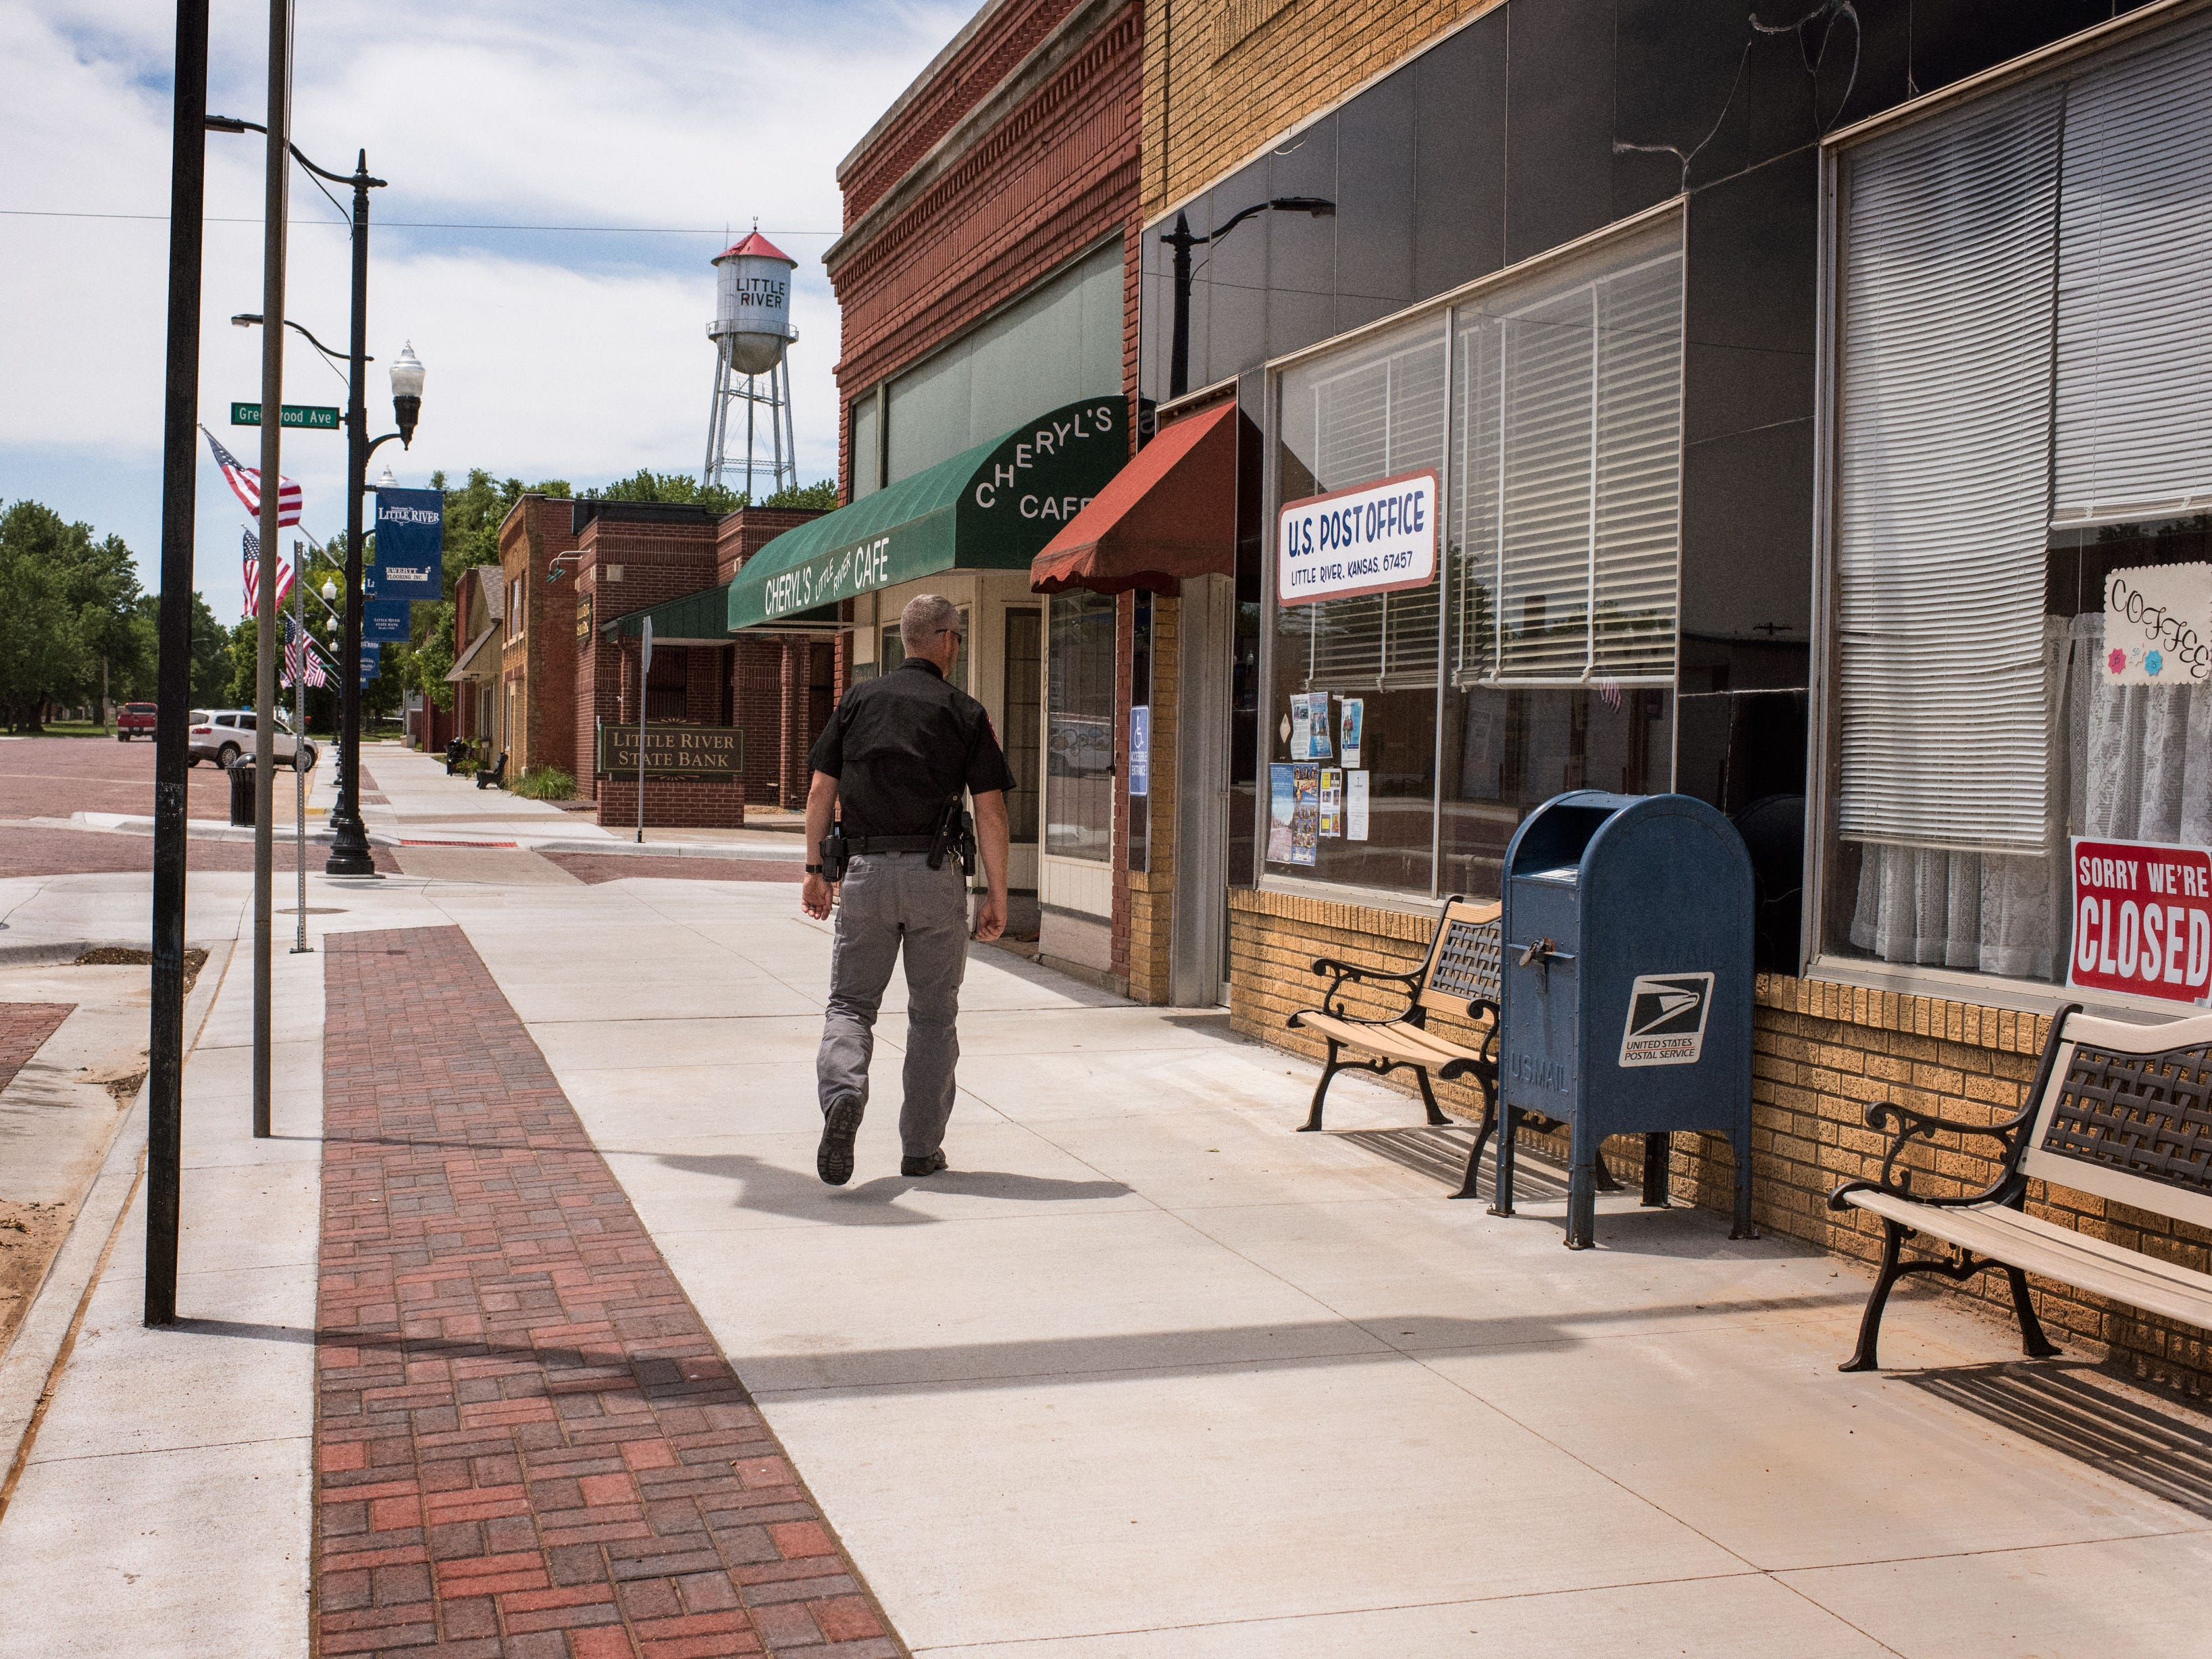 Johanning walks down Main Street in Little River